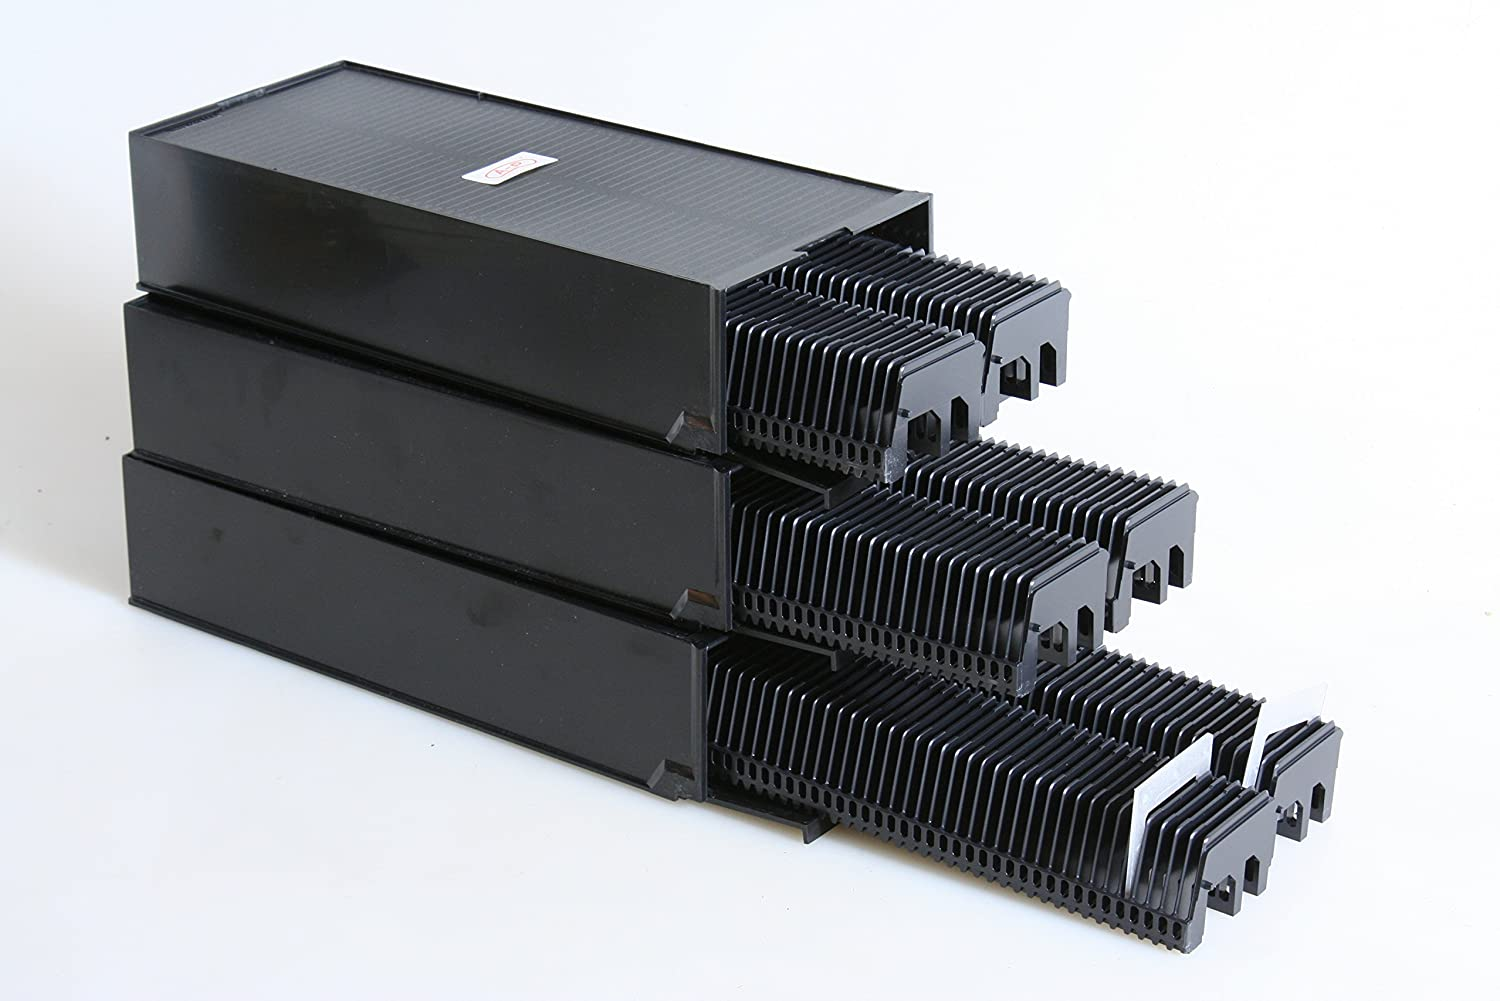 Straight Slide Trays in Cases For Leica Projector /& others hold 50 slides set//6 trays